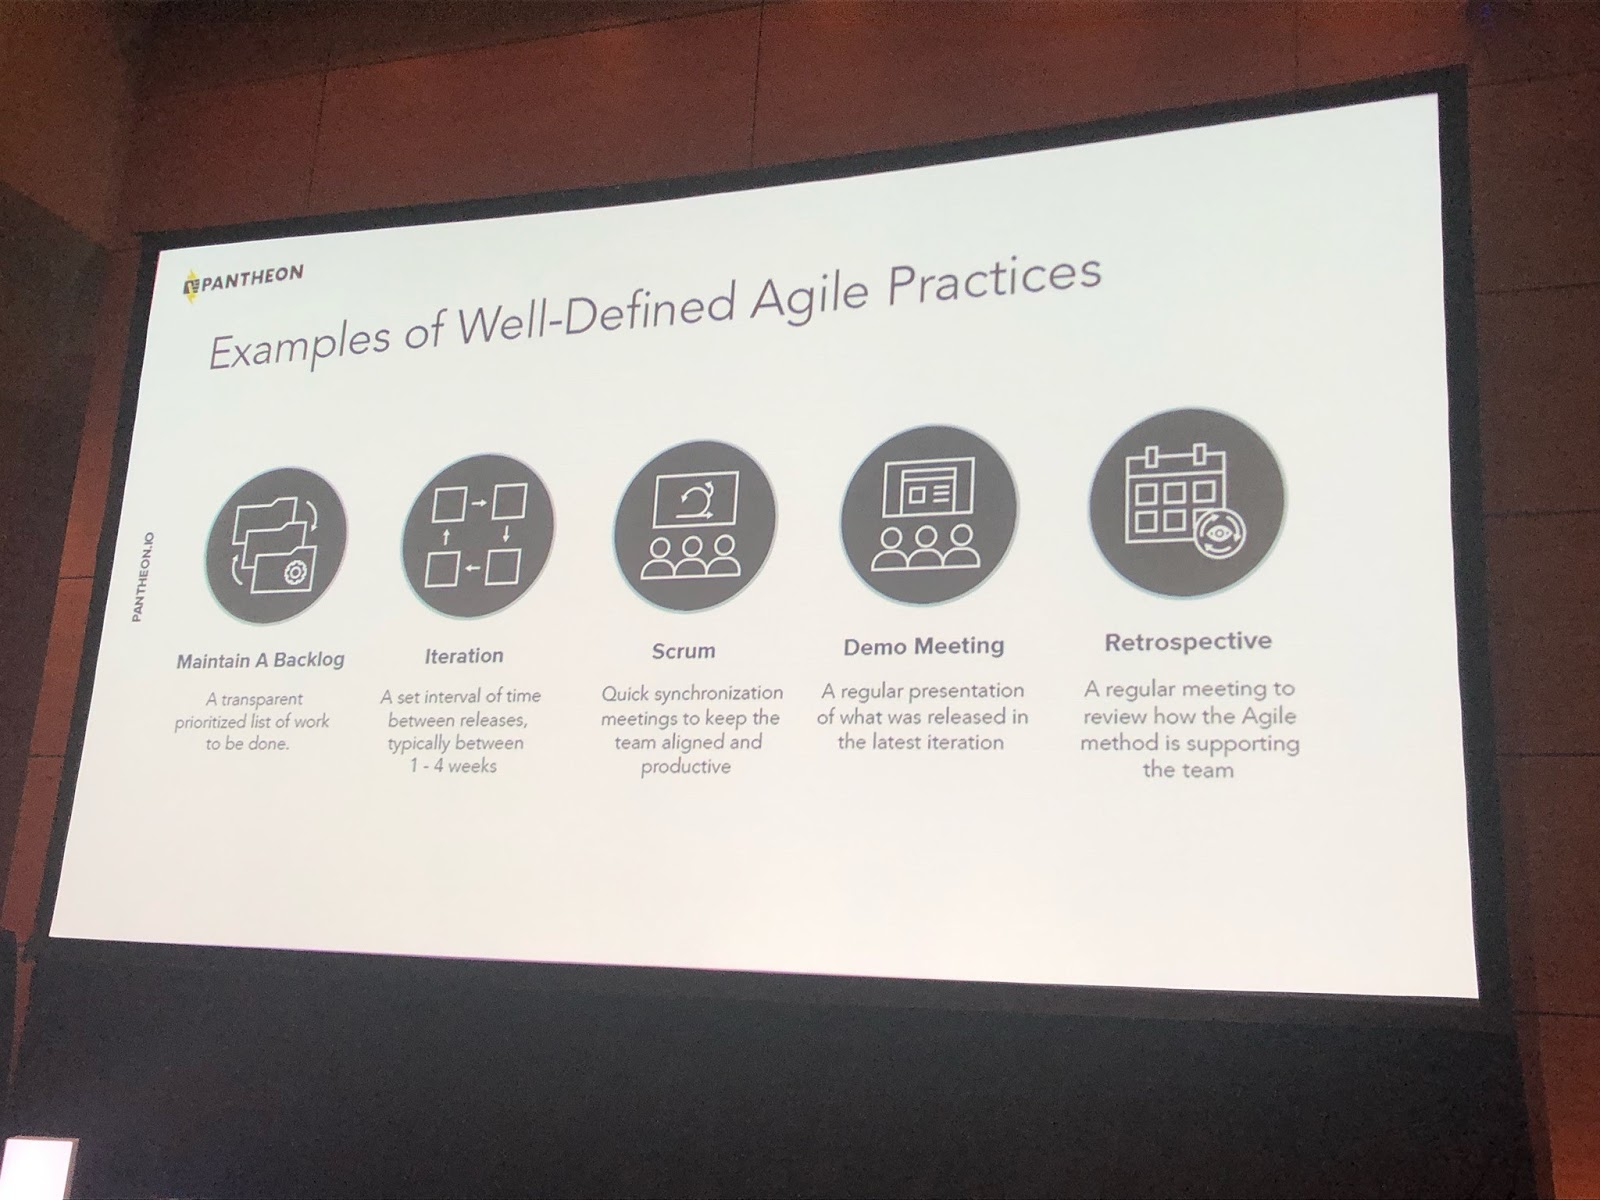 Examples of Agile Marketing Practices